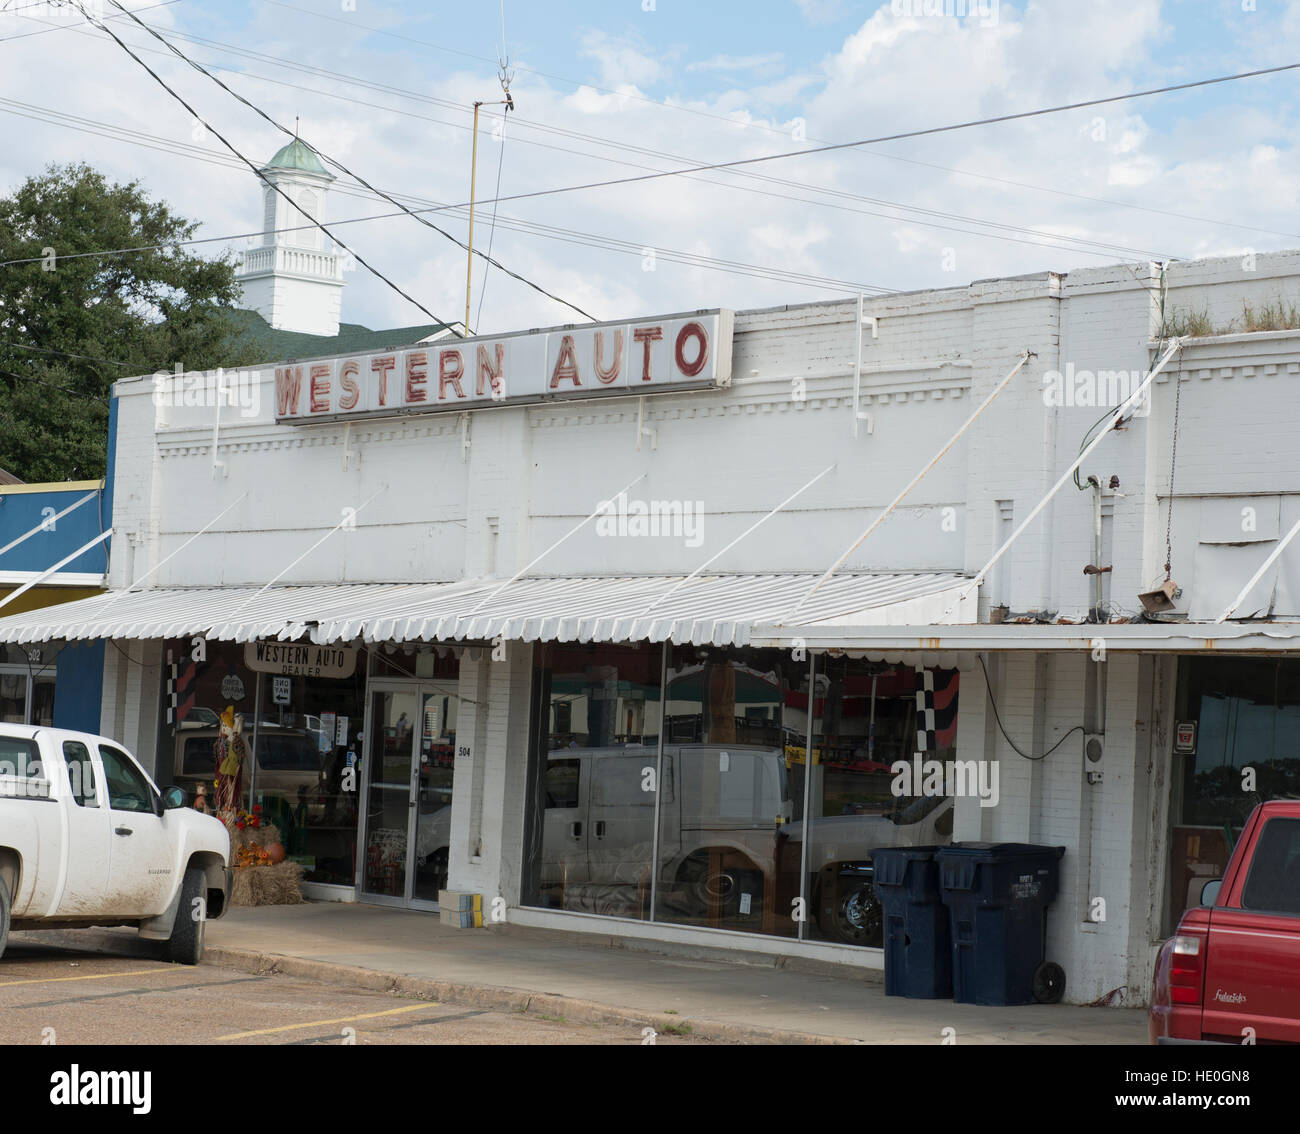 Southern Auto Parts >> Auto Parts Building In The Small Southern Town Of Tallulah